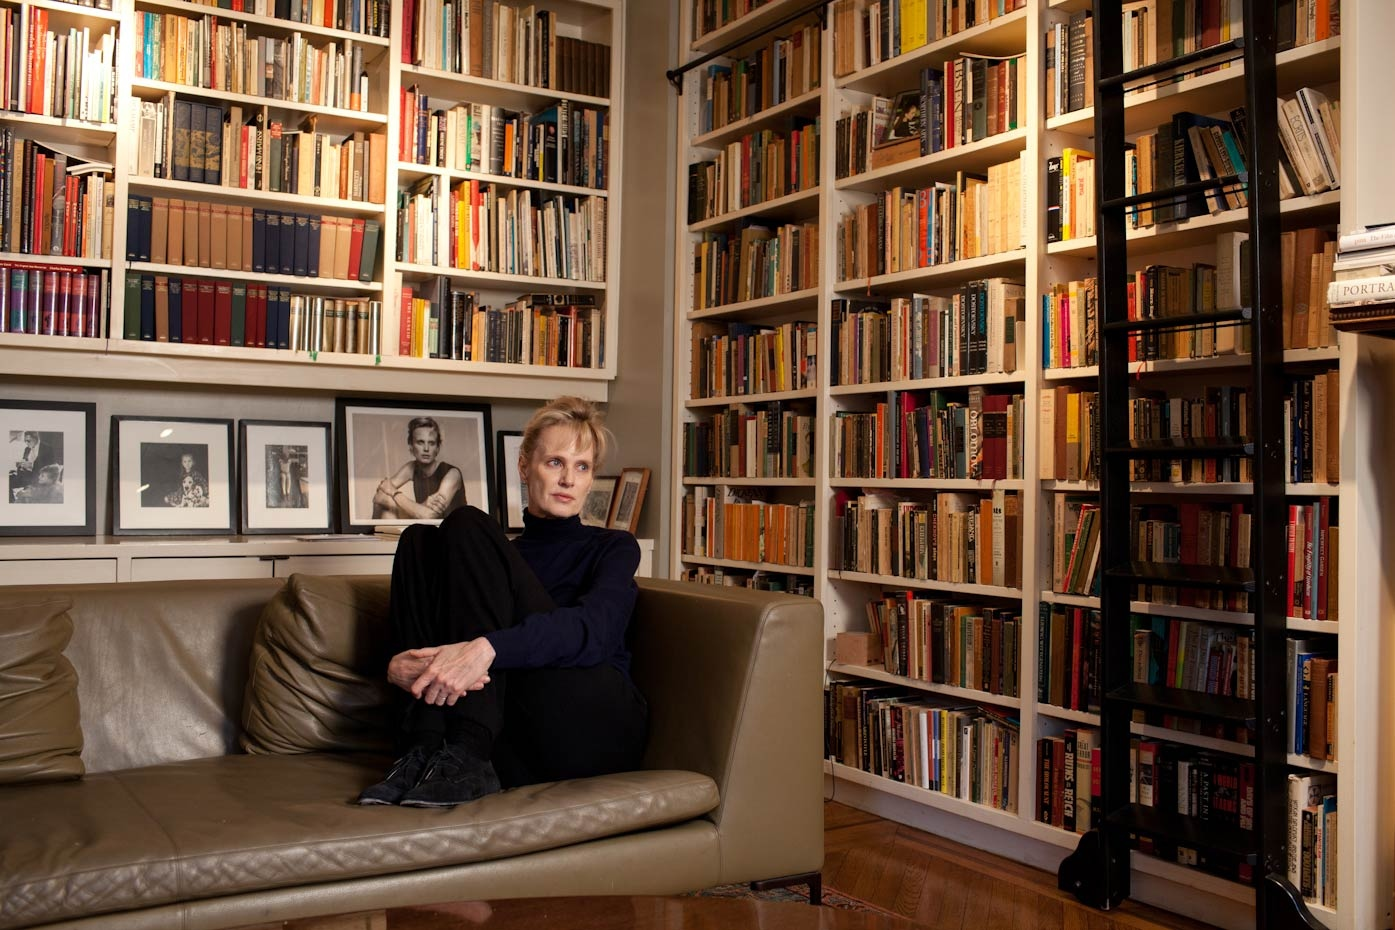 Siri Hustvedt for Le Monde Magazine